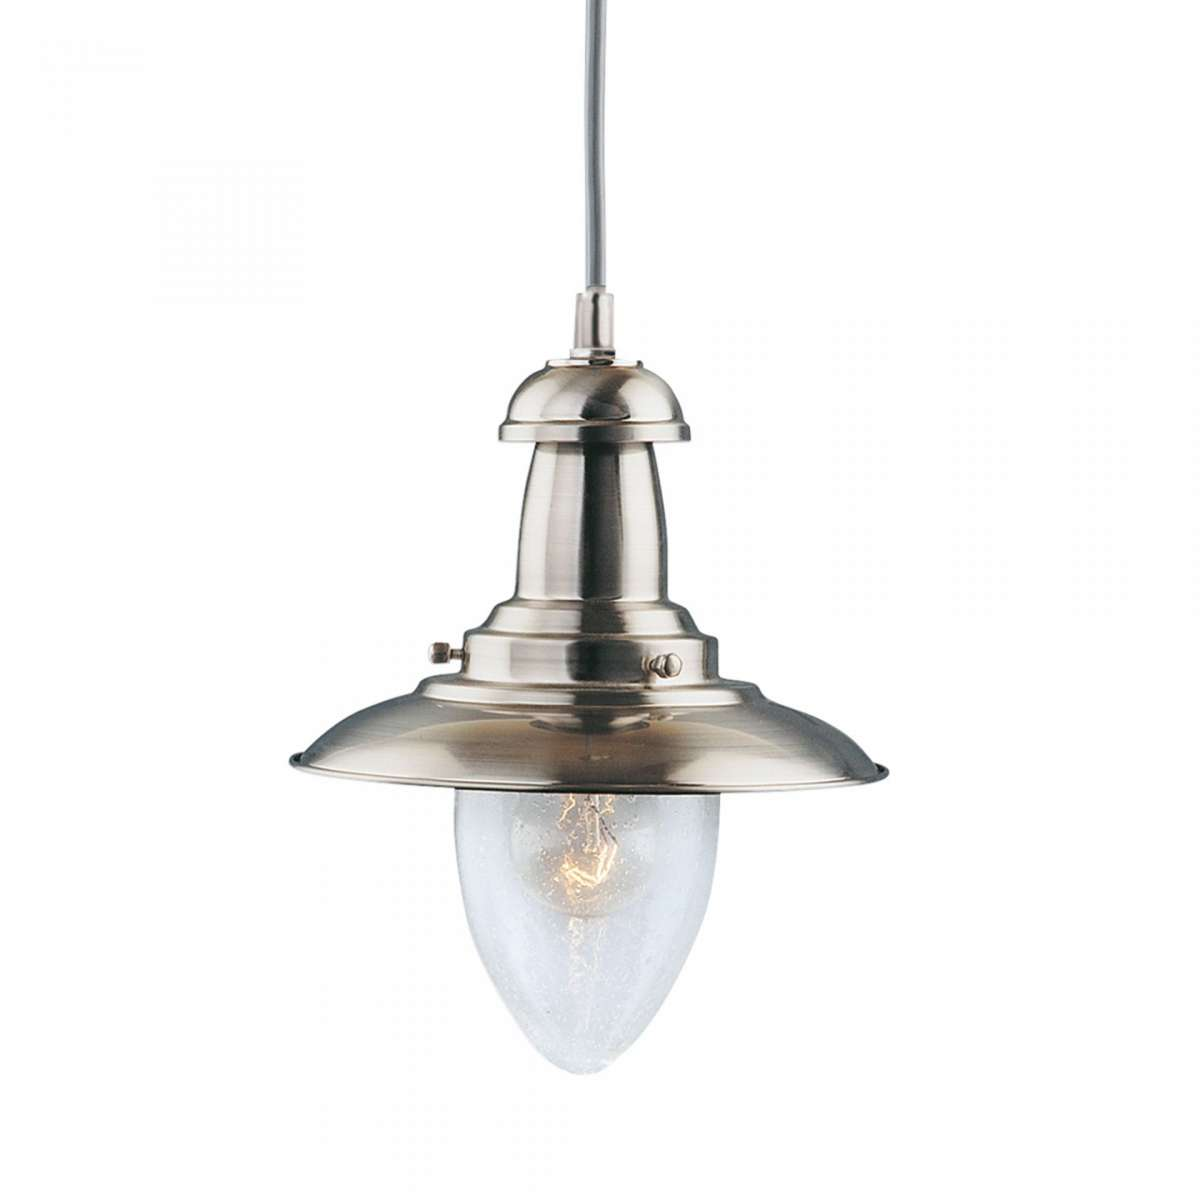 Fisherman Satin Silver Ceiling Light with Oval Seeded Glass Shade